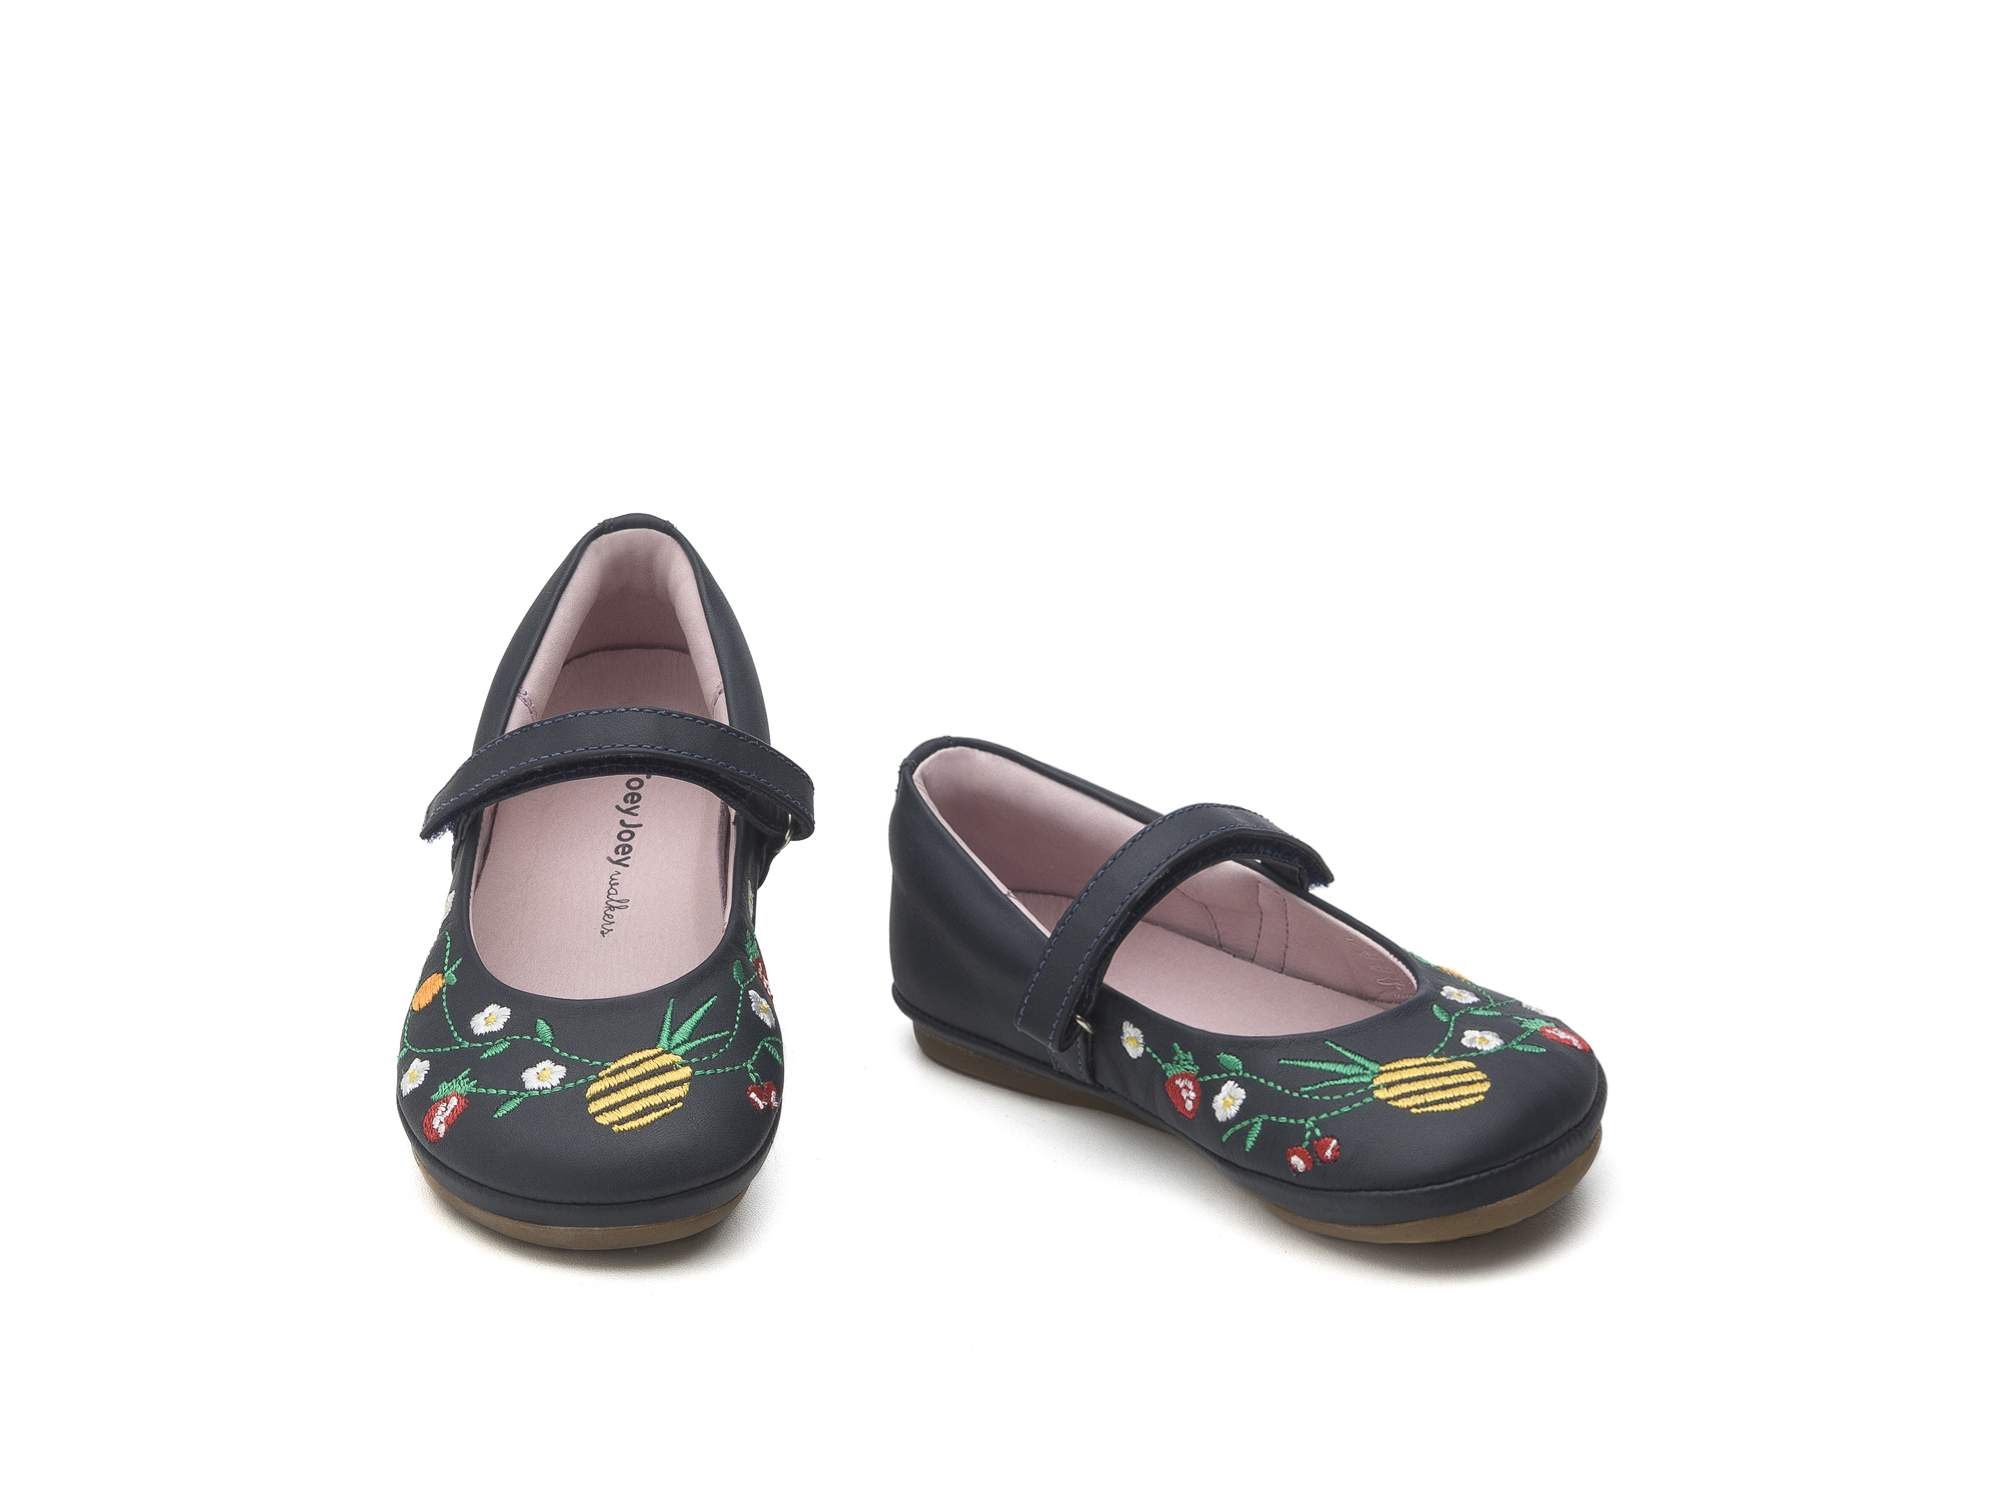 Mary Jane Little Twirl Garden Navy  Toddler for ages 2 to 4 years - 2